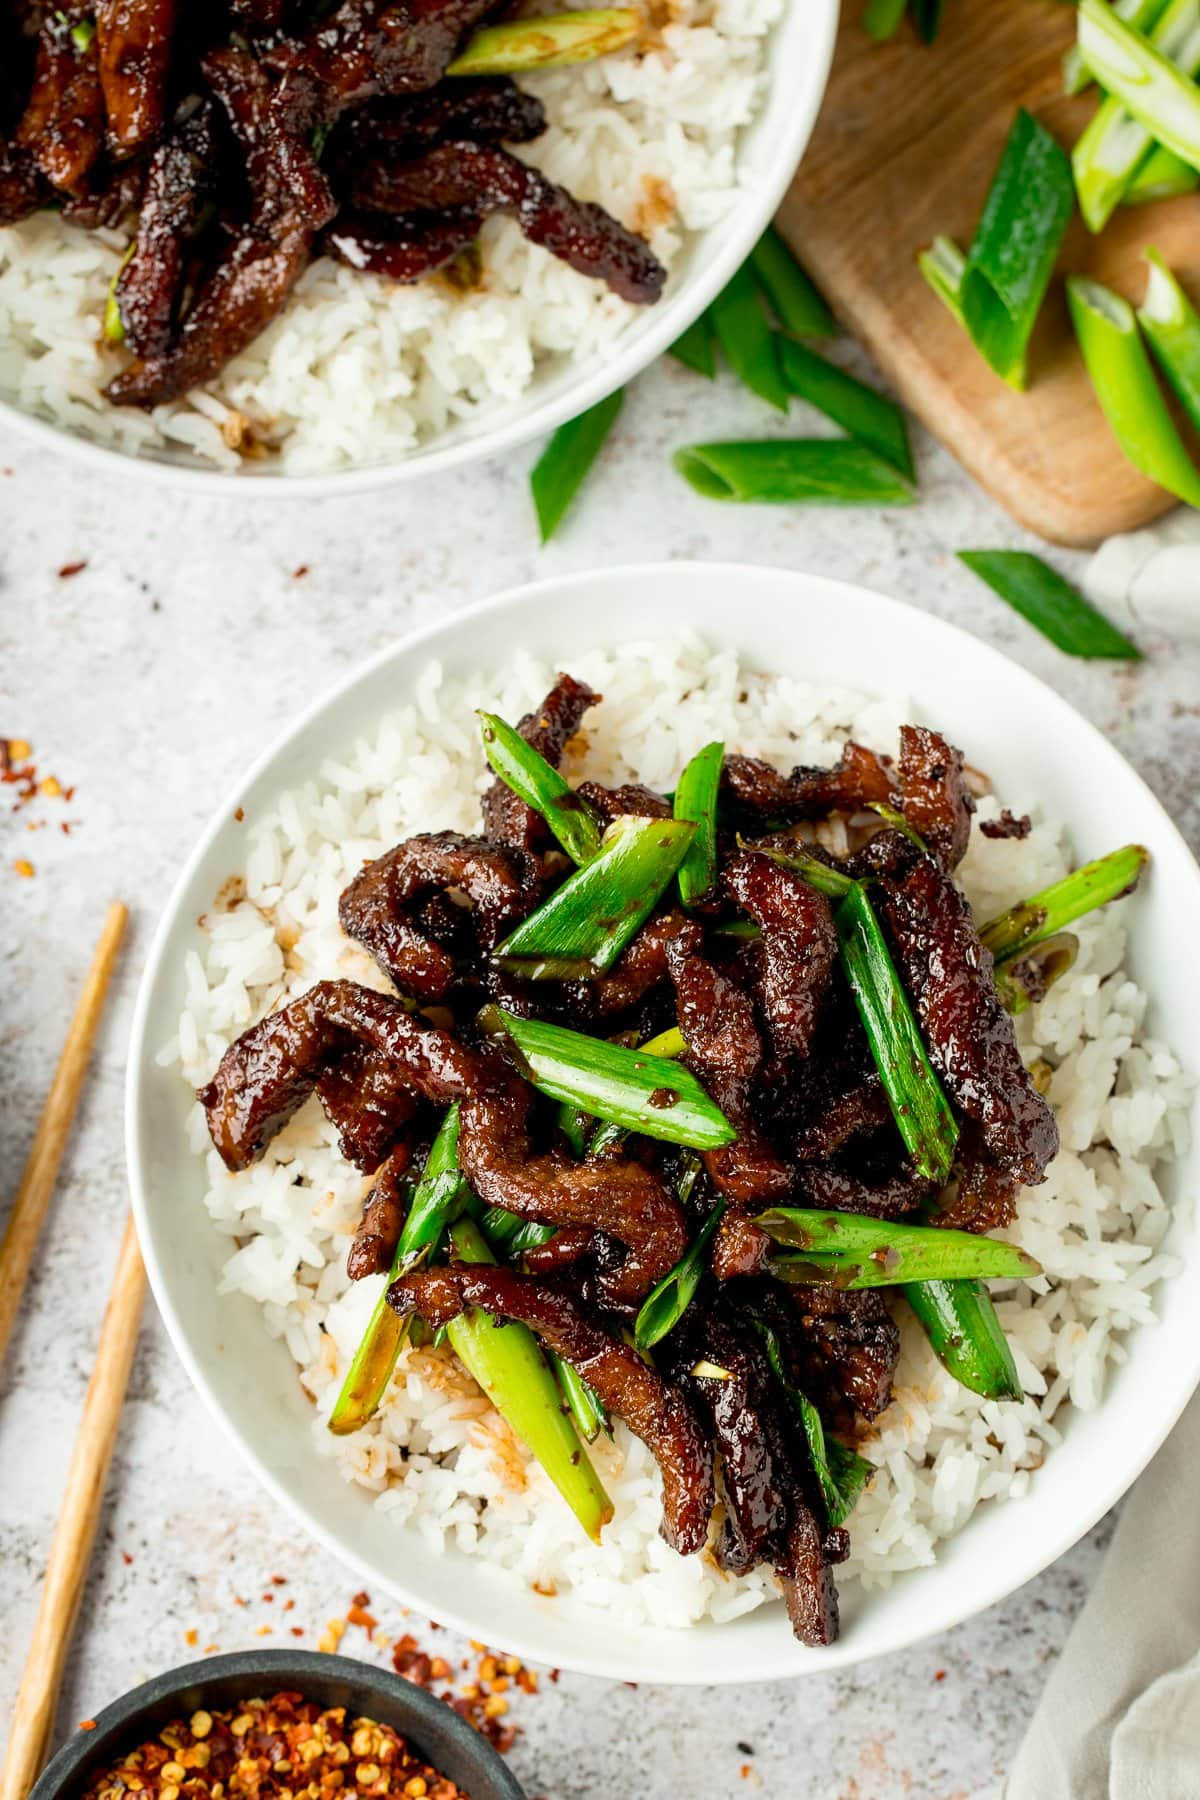 Mongolian Beef and rice in a white bowl on a light background with chopsticks and ingredients scattered around